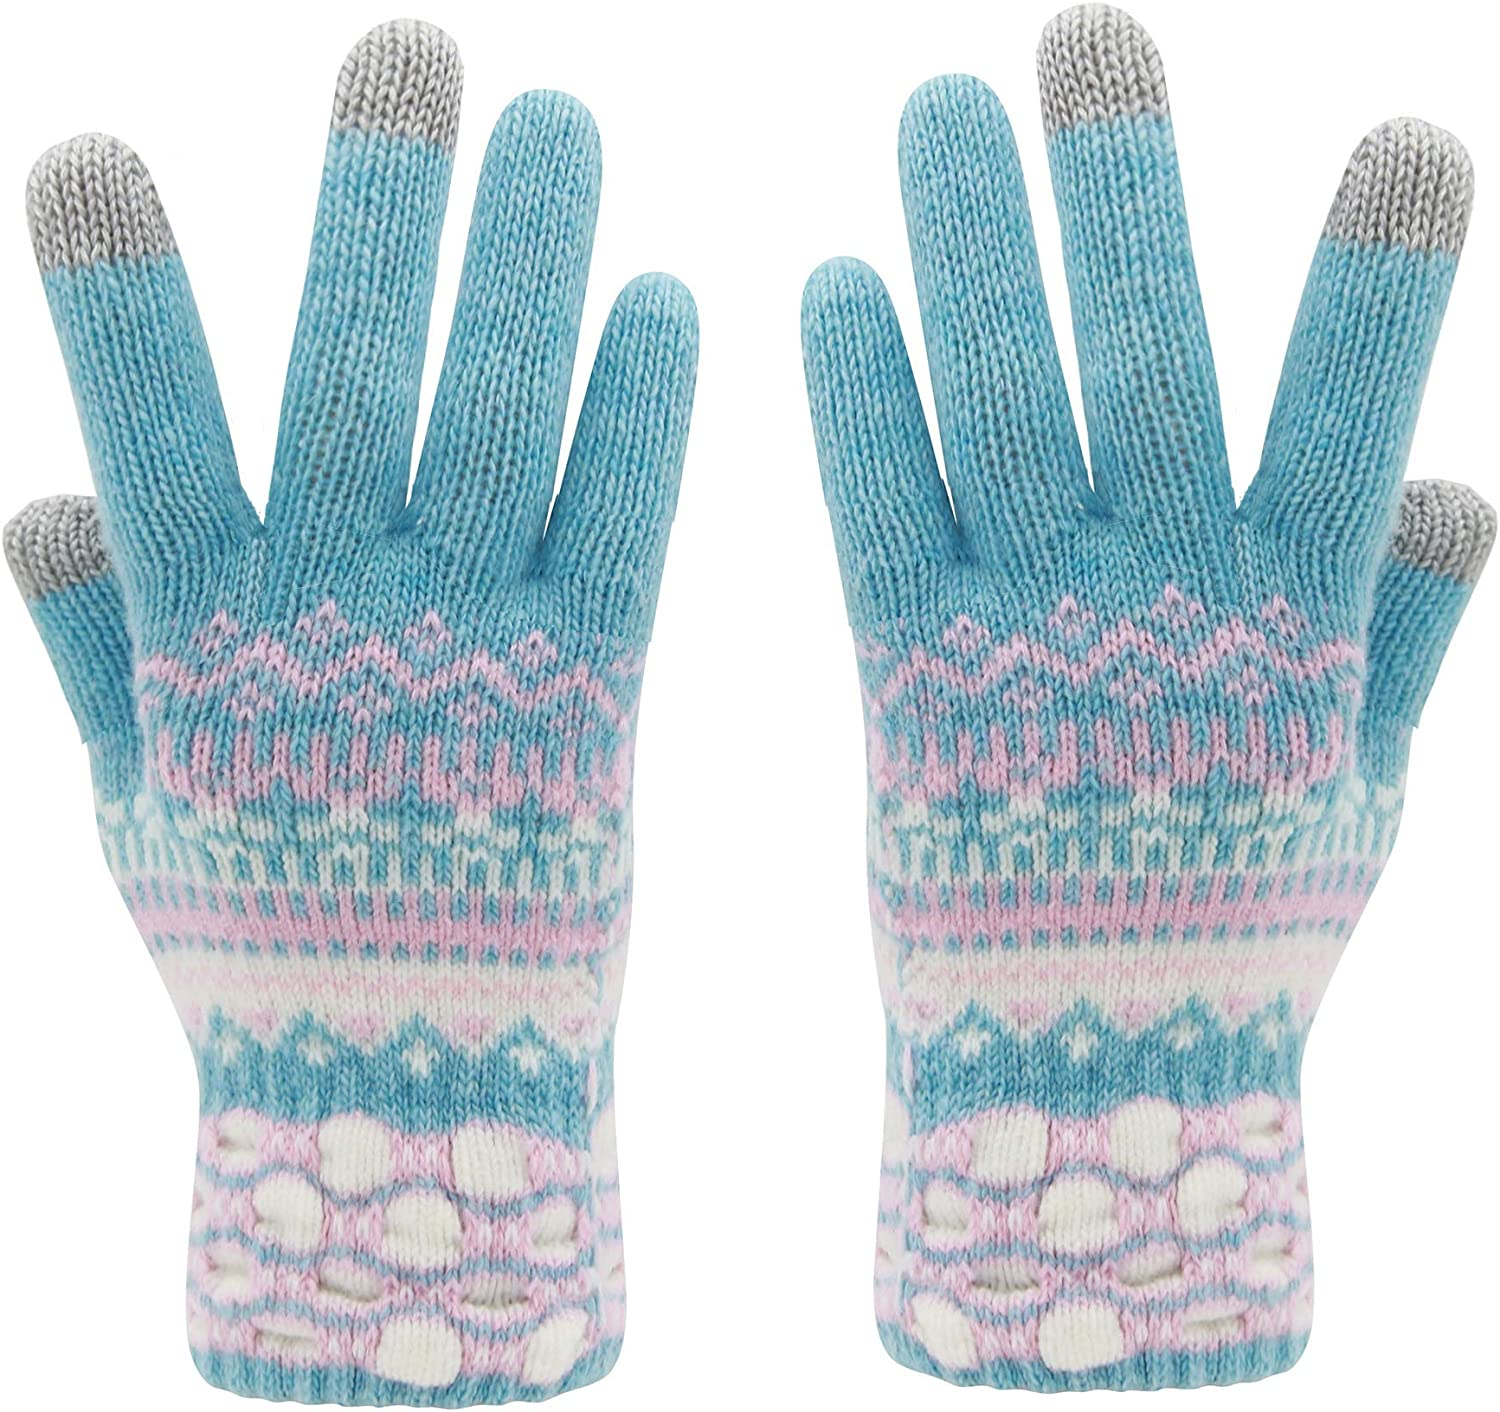 Womens Winter Touchscreen Gloves Knit Wool Warm Dual-layer 3 Fingers Thermal Soft Wool Anti-Slip Touch Screen Mitten Glove